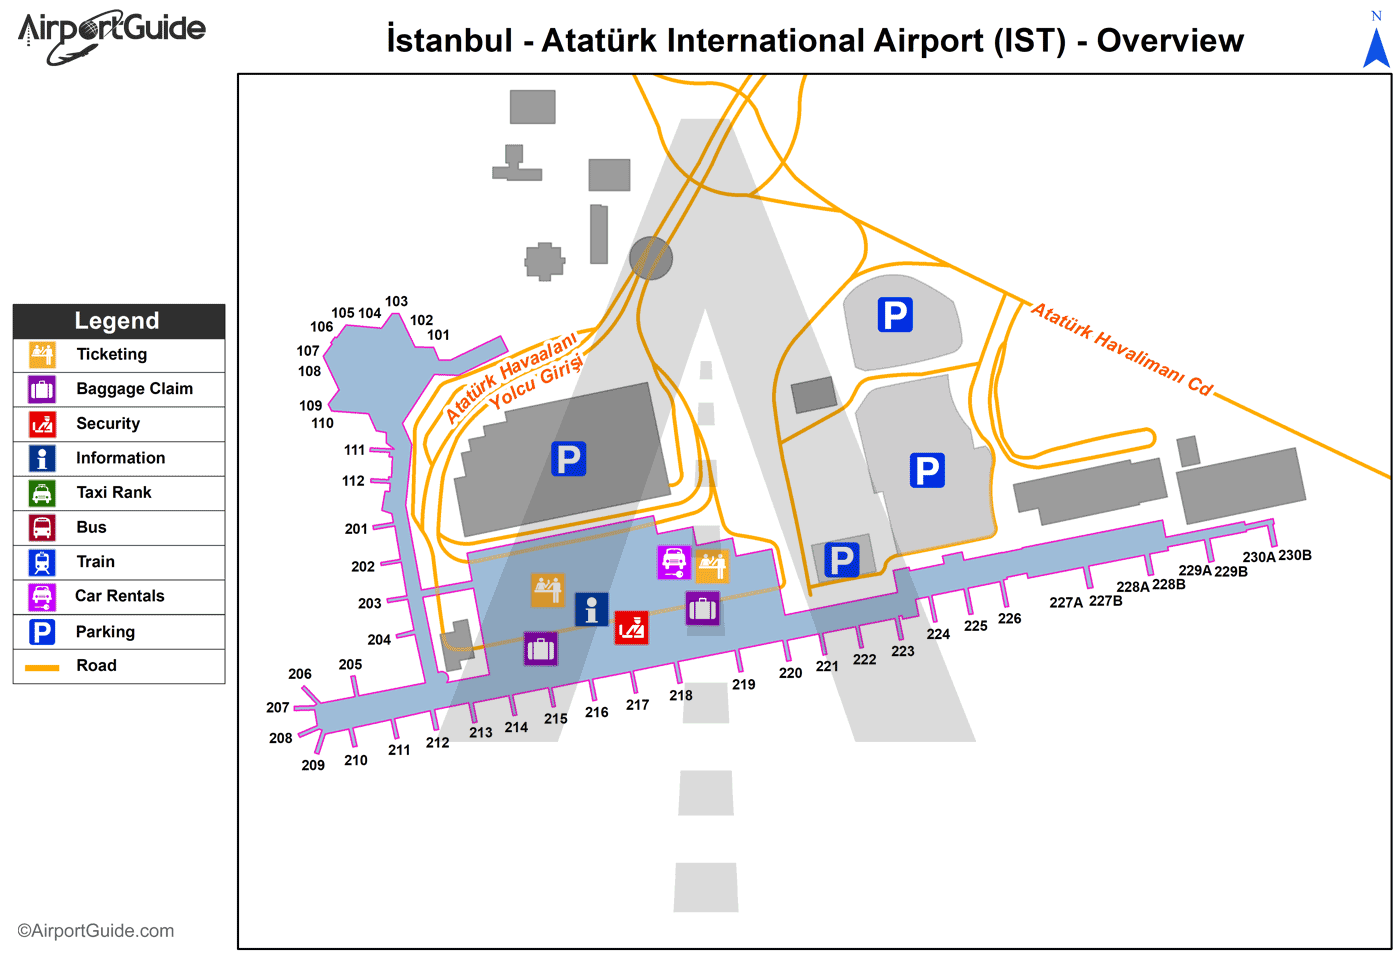 İstanbul - Atatürk International (IST) Airport Terminal Map - Overview